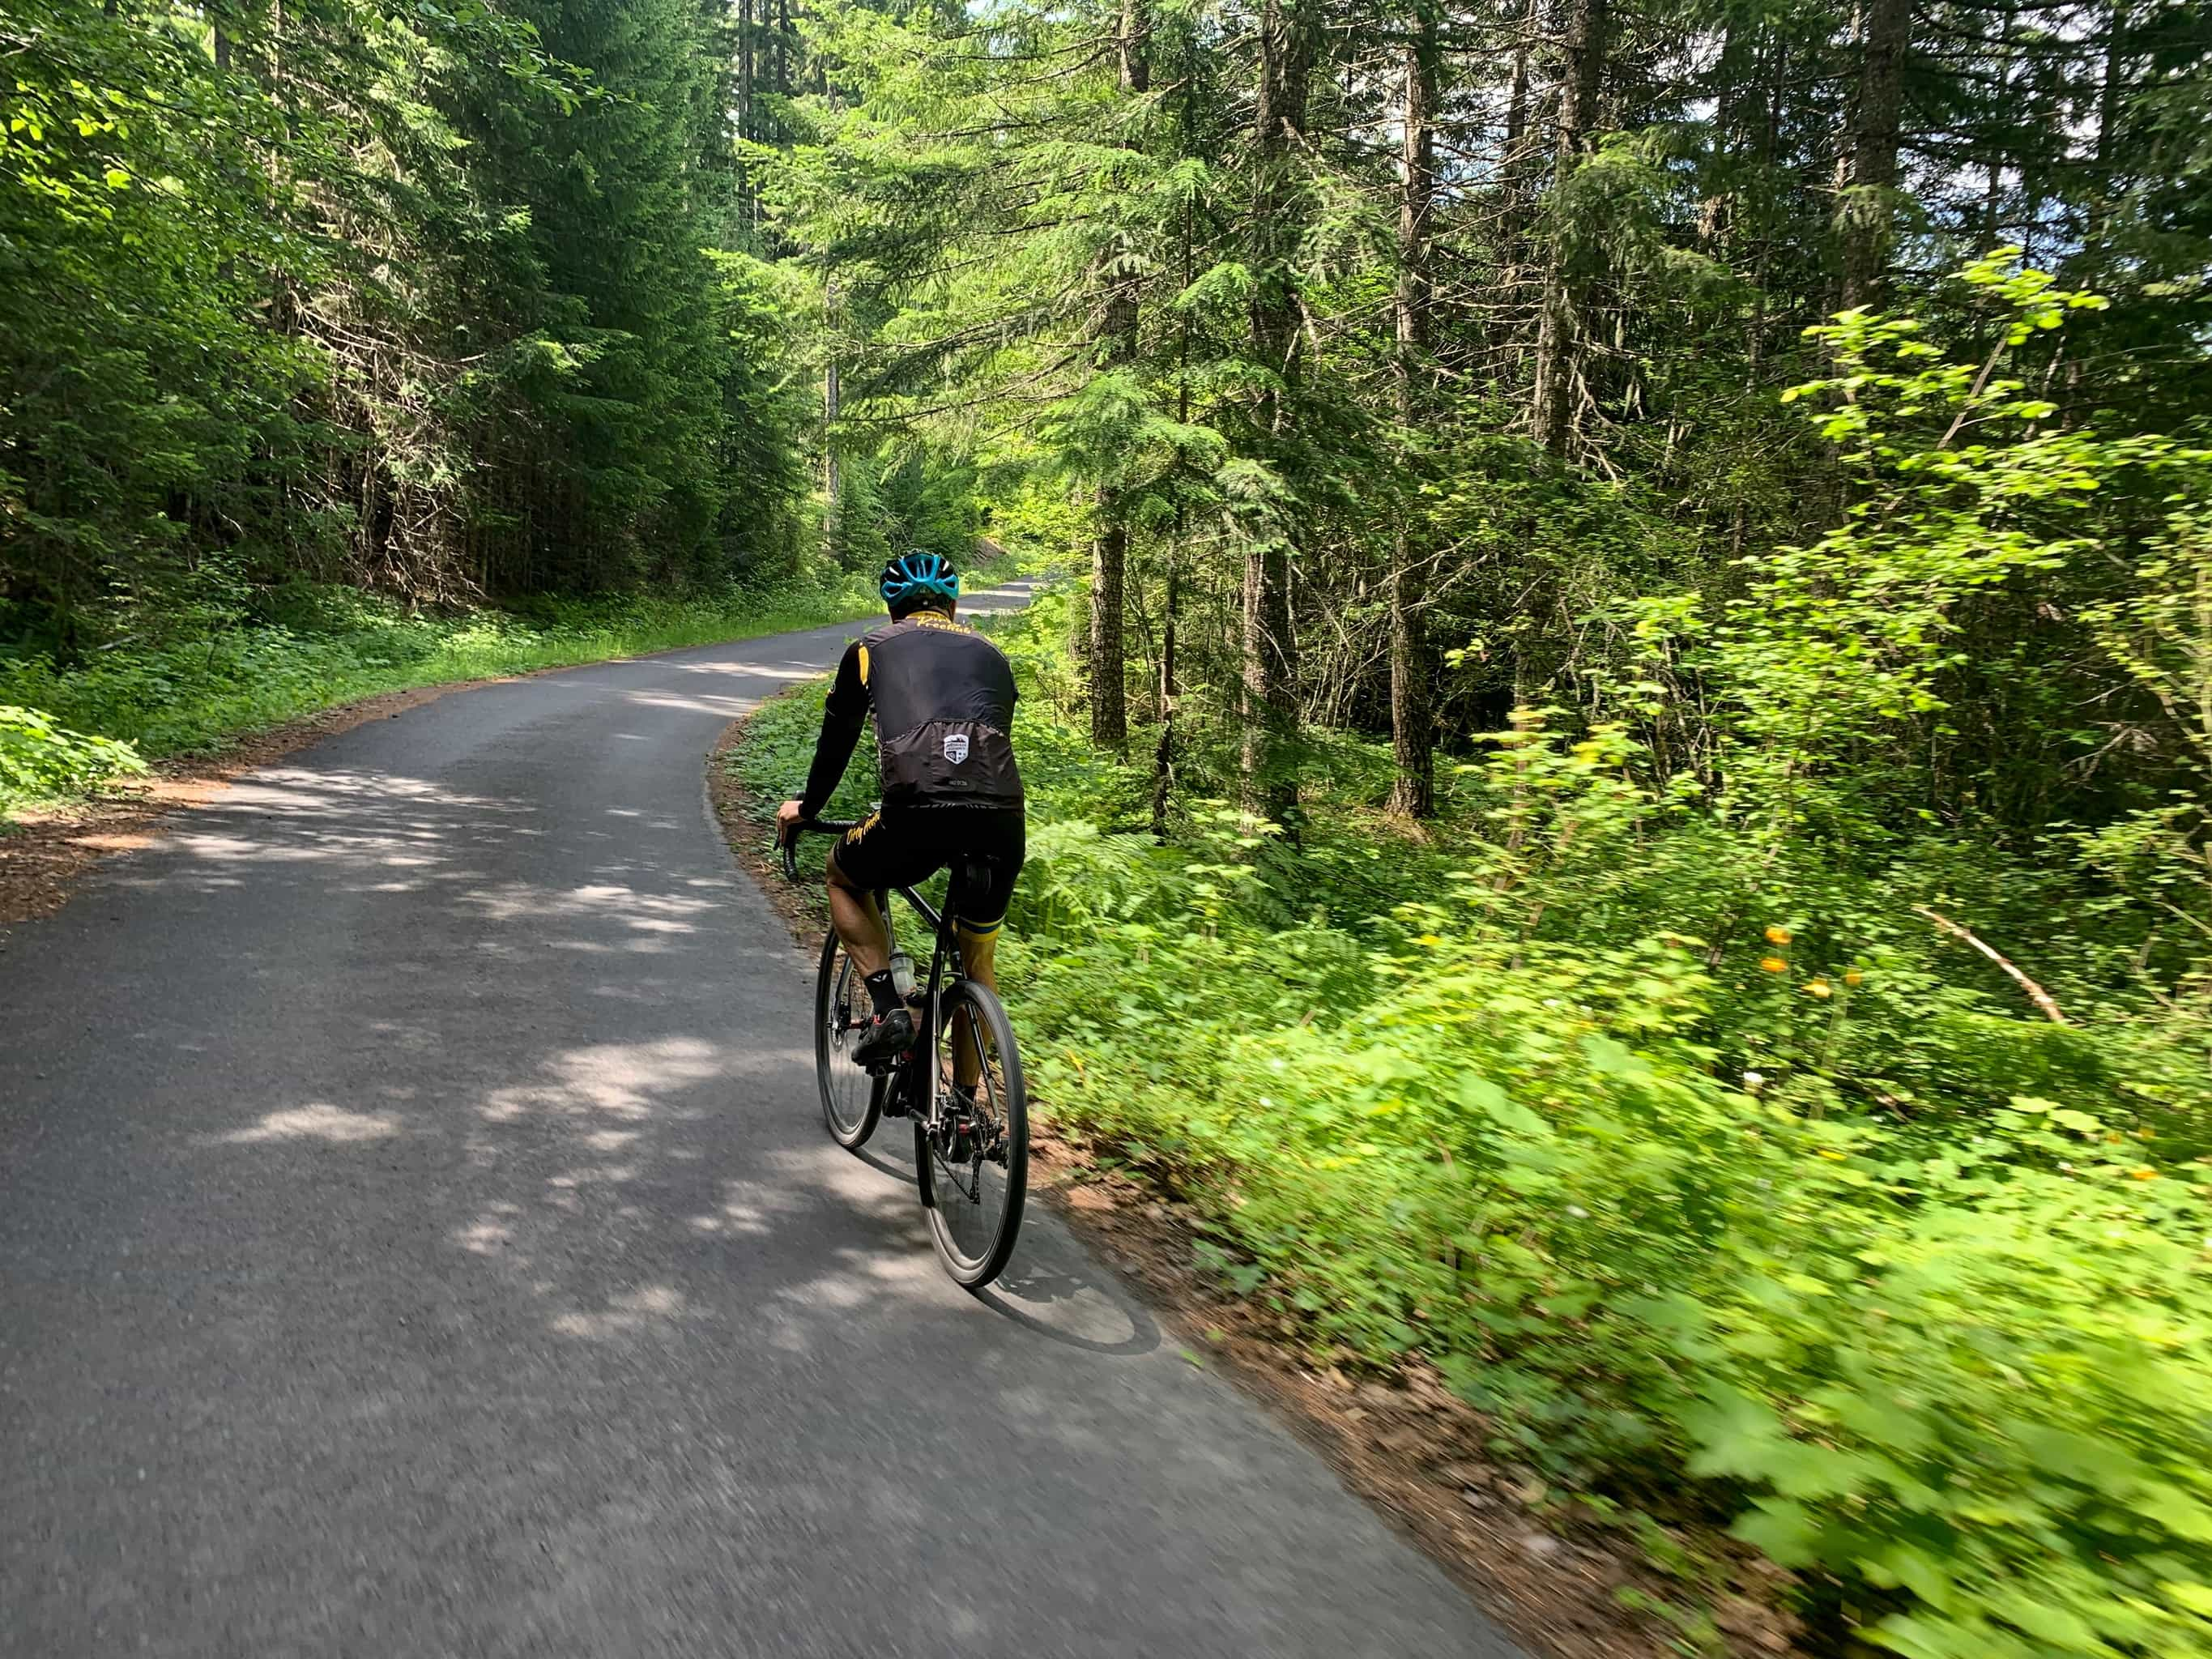 Cyclist on Carson Guler road, paved, near Carson, Washington in the Columbia River Gorge area.